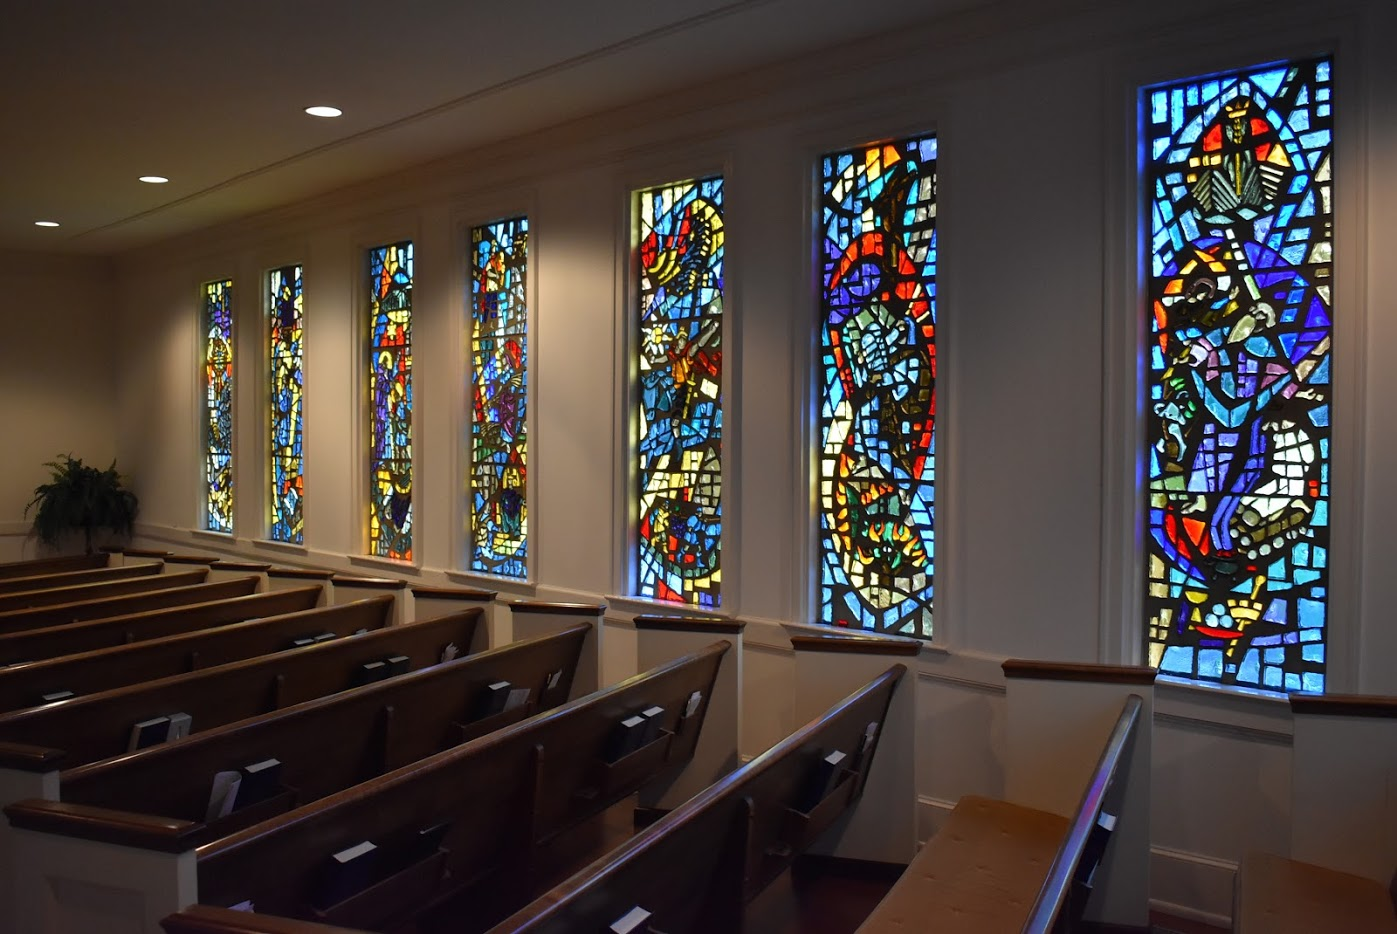 sanctuary with stained glass windows